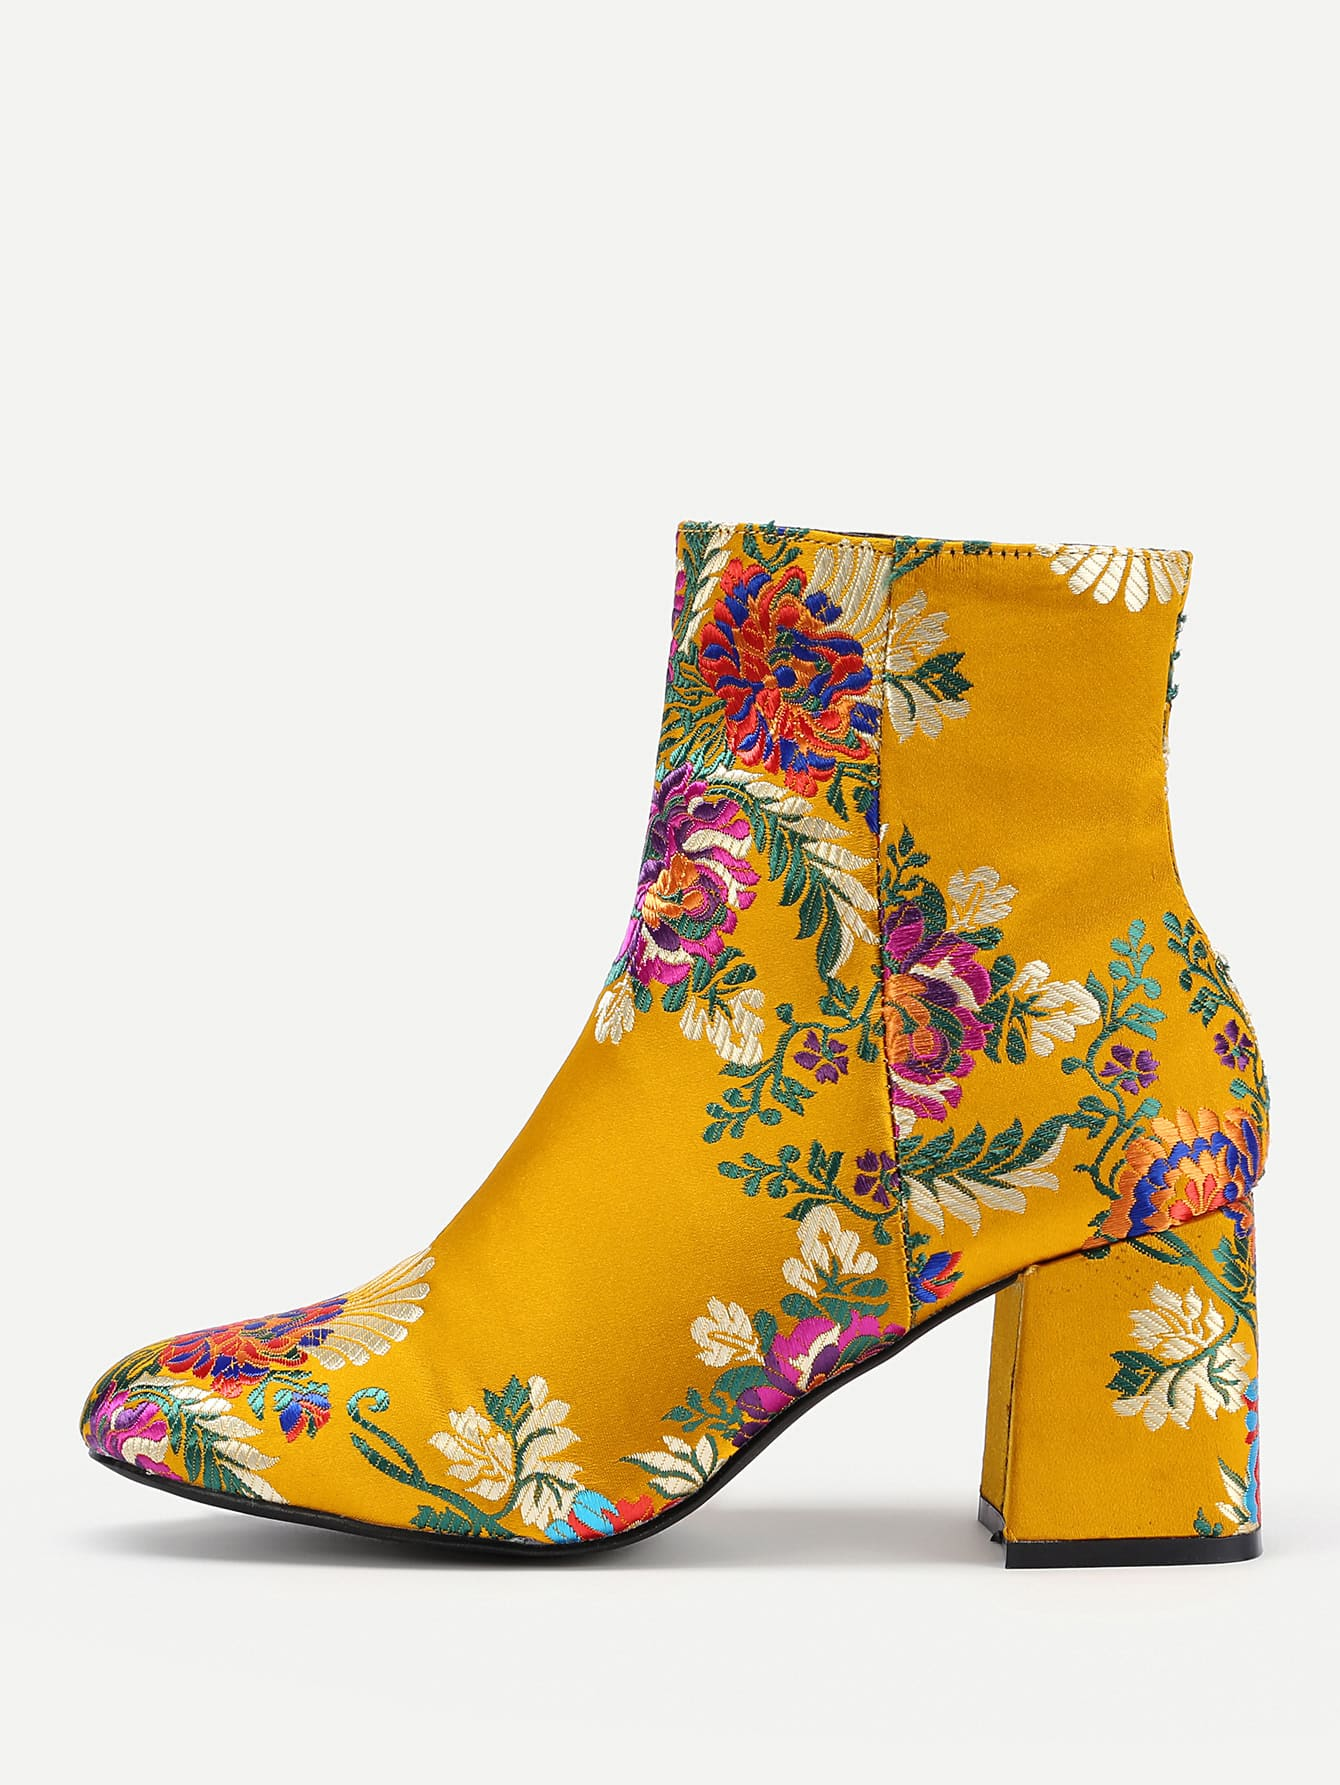 Calico Embroidery Pointed Toe Ankle Boots